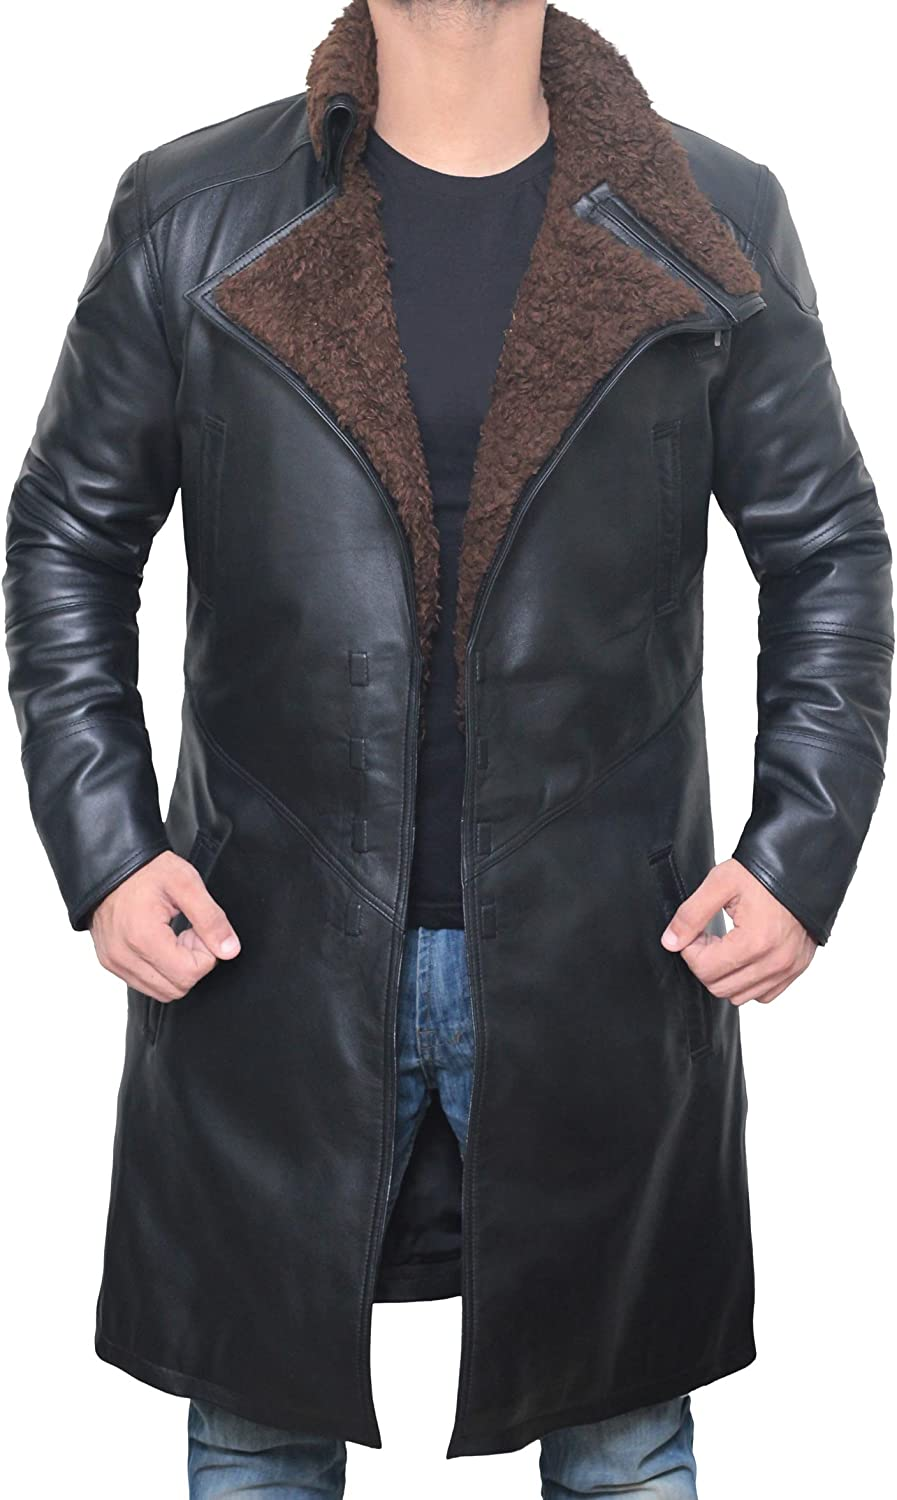 Blingsoul Black Trench Coat Men Leather Winter Same 100% quality warranty! day shipping - Shearling